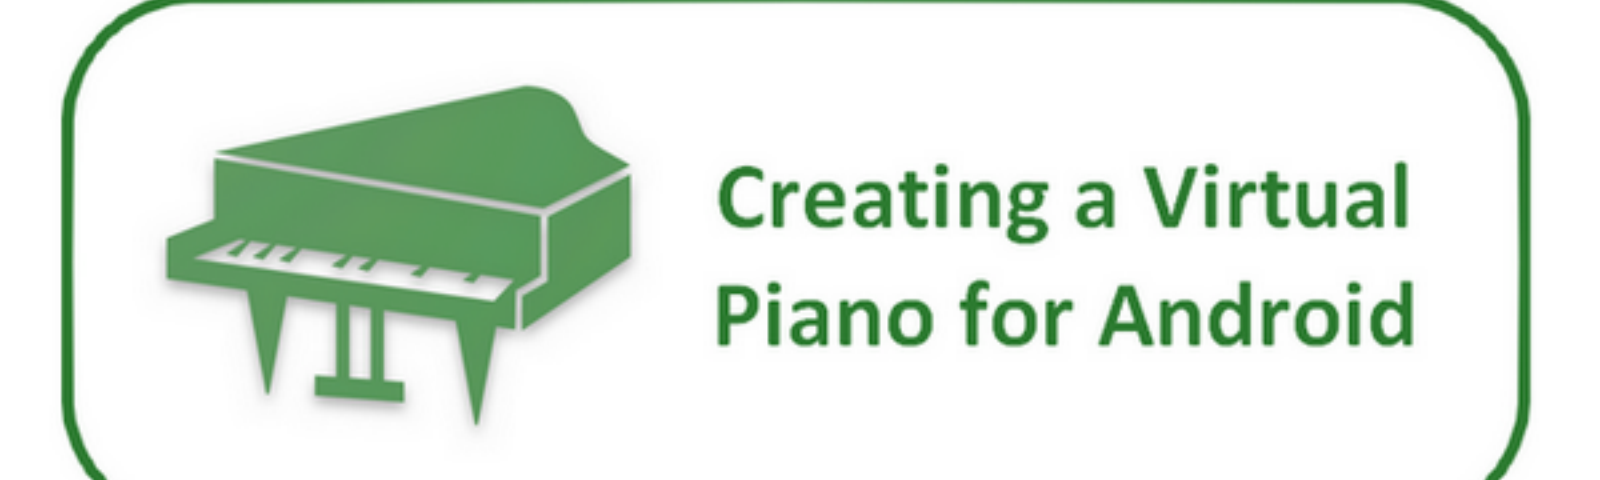 Creating a Virtual Piano Application for Android - Sylvain Saurel